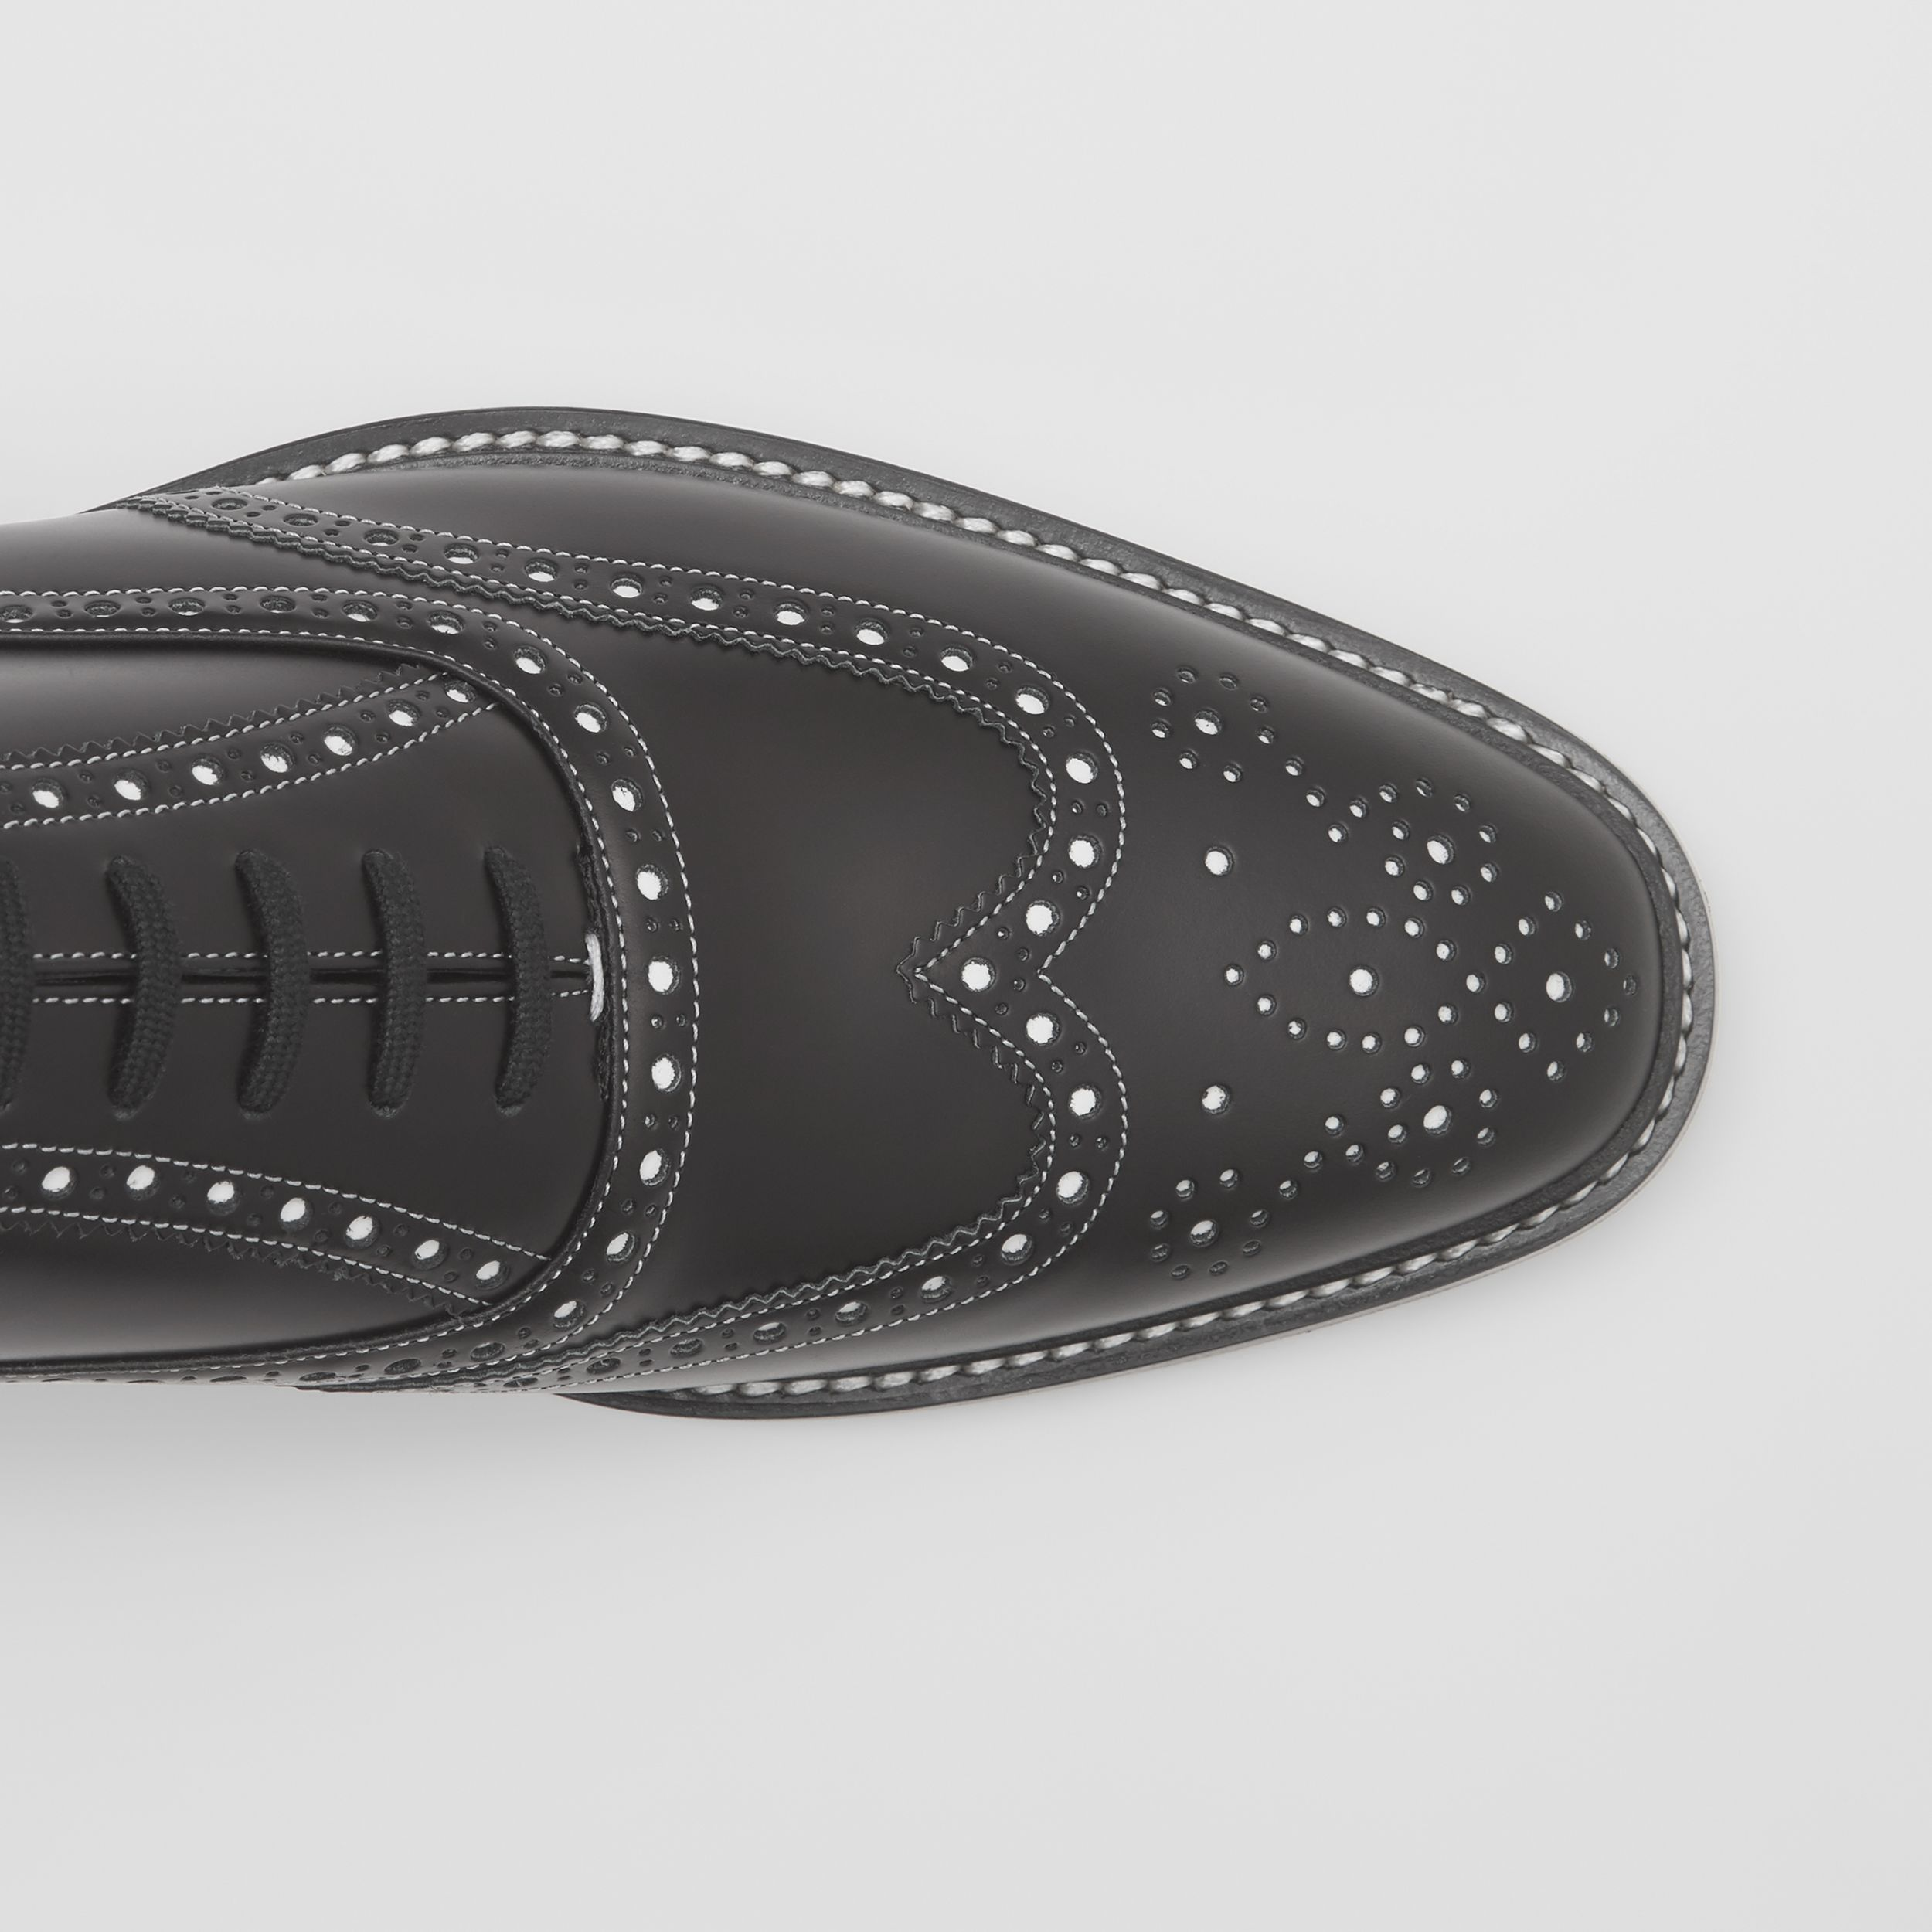 D-ring Detail Two-tone Leather Oxford Brogues in Black/white - Men | Burberry - 2